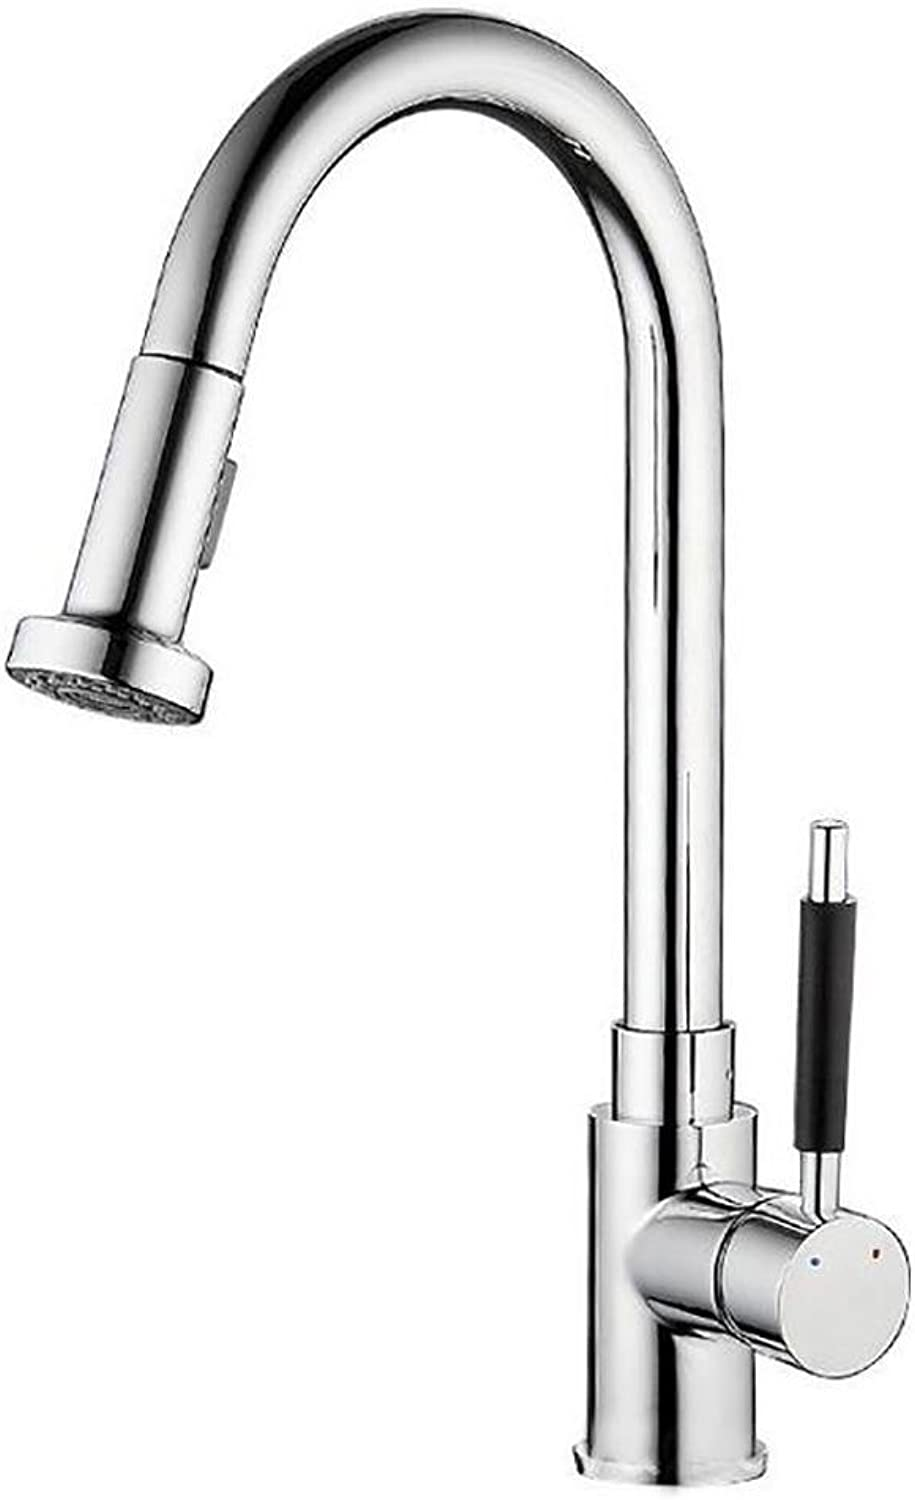 BKPH Modern Kitchen Faucet Pull Out Single Handle Swivel Spout Vessel Sink Mixer Tap Hot and Cold Water